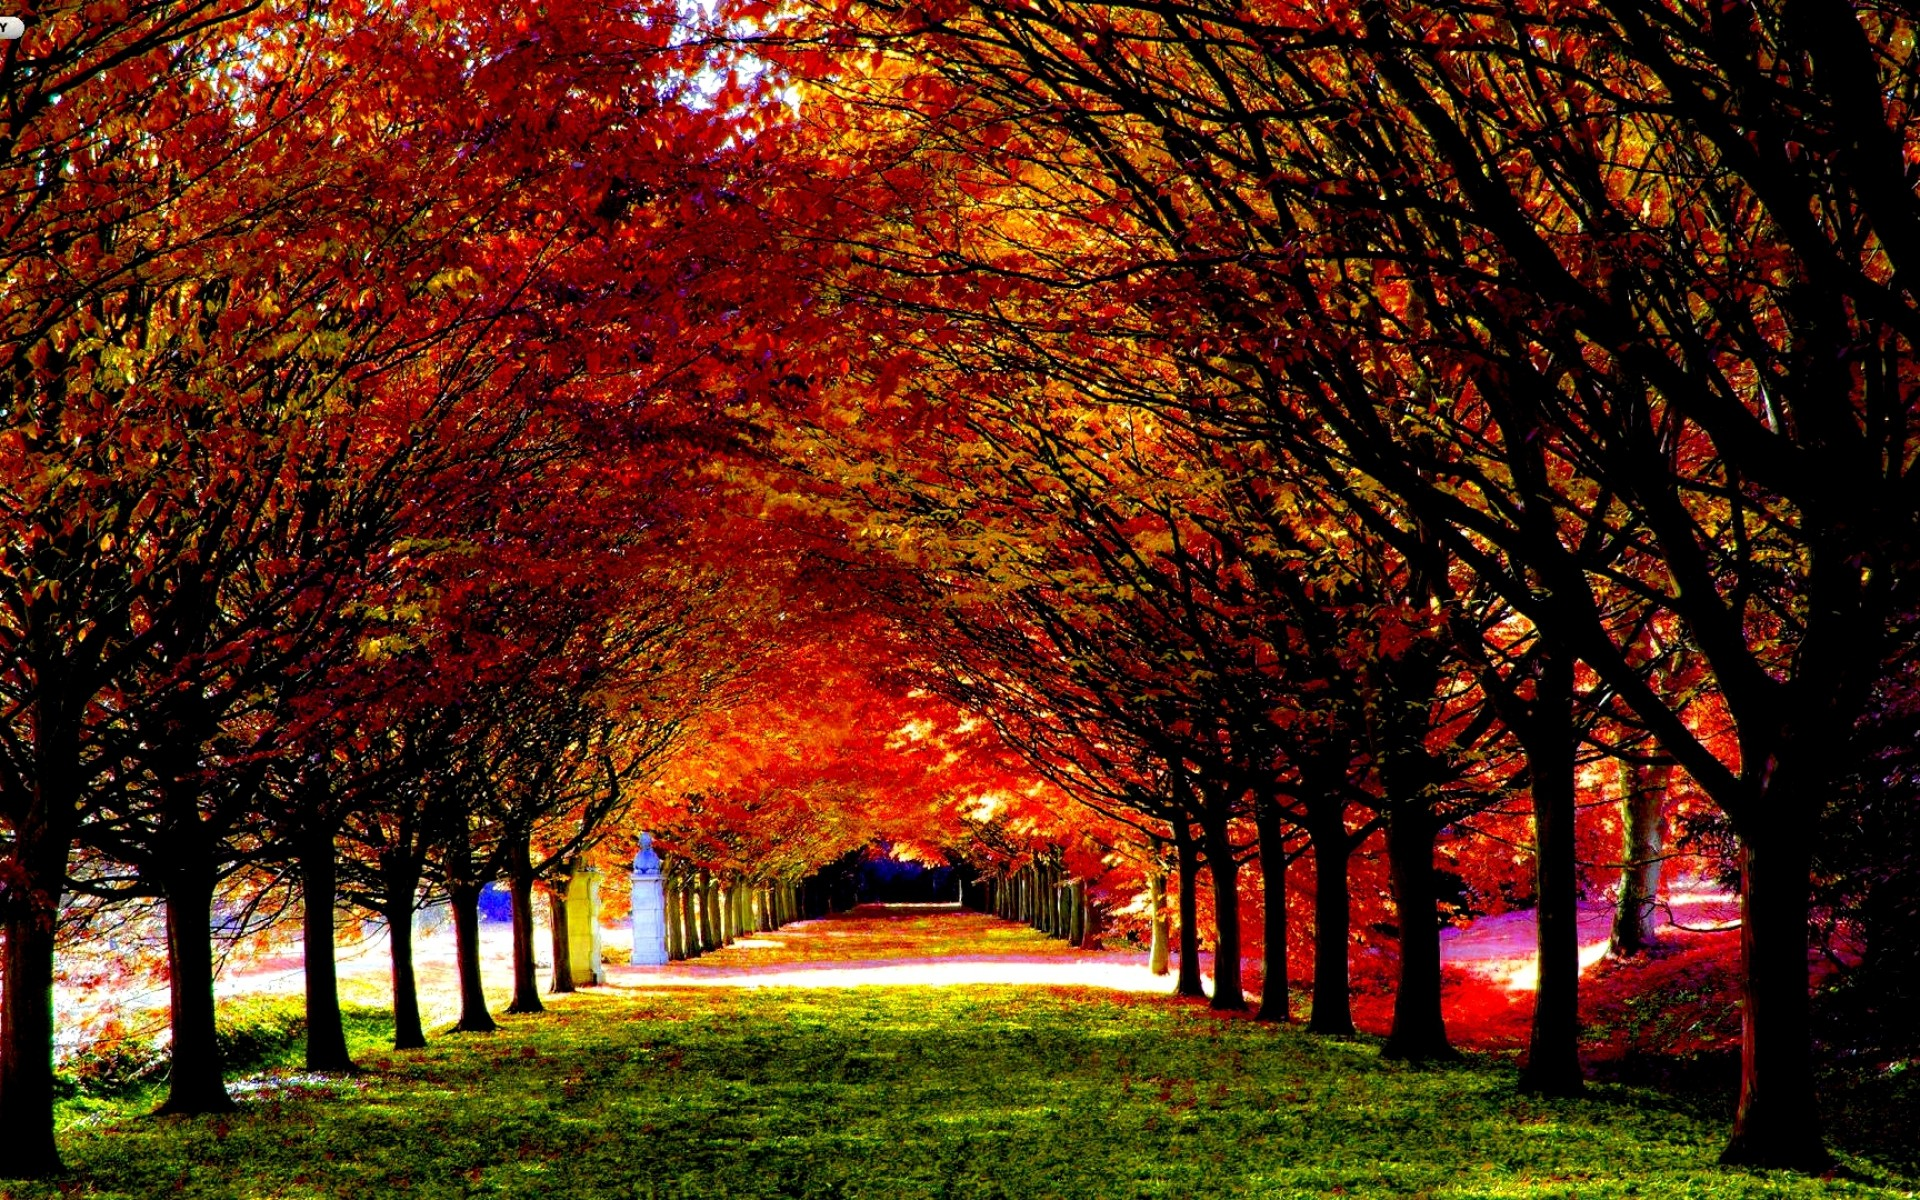 1920x1080 Other Autumn Nature Red Fire Bush Free Wallpapers For HD